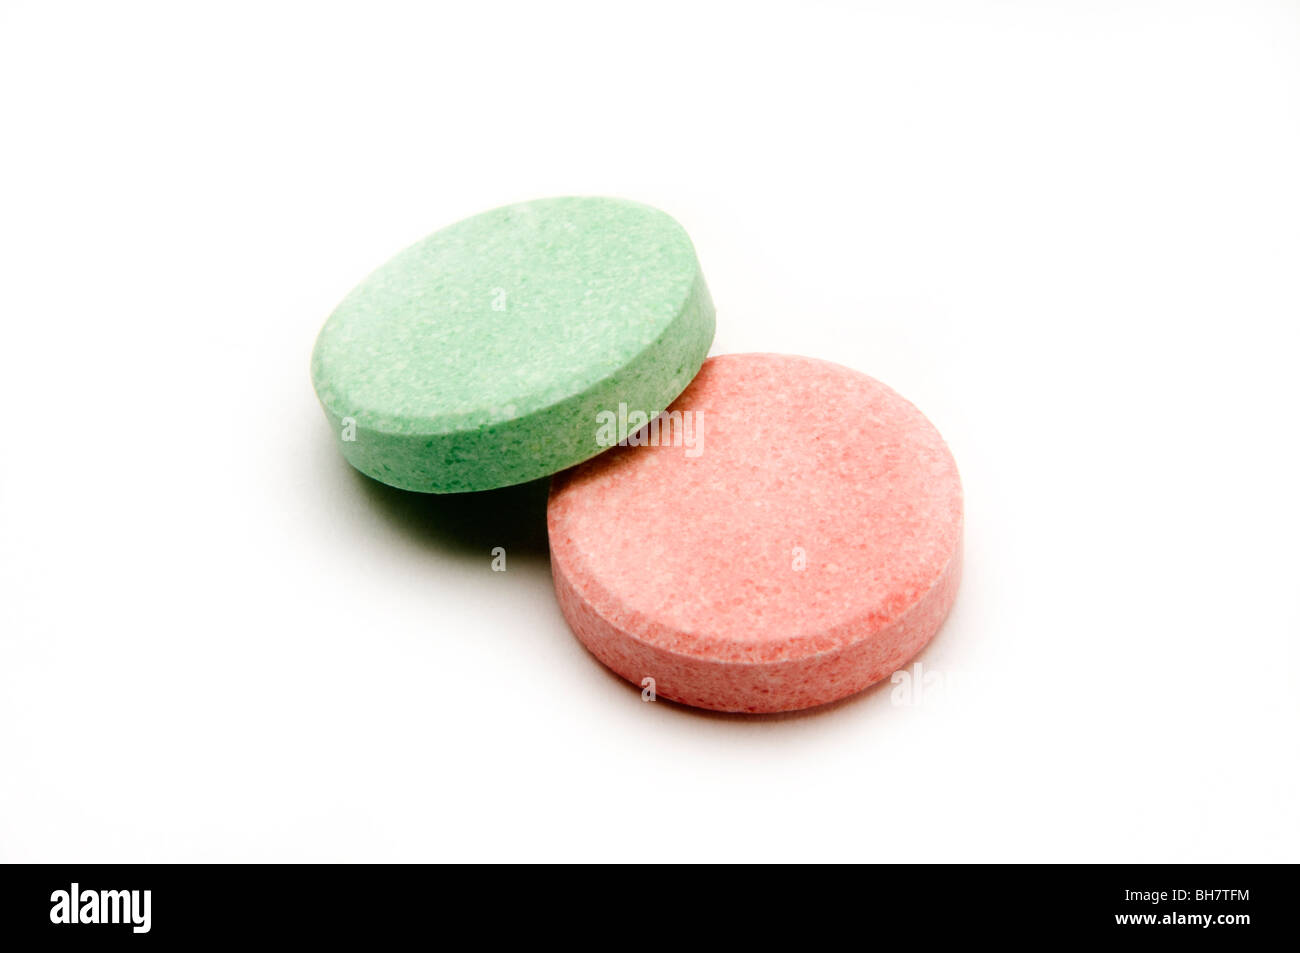 antacid tablets on white - Stock Image